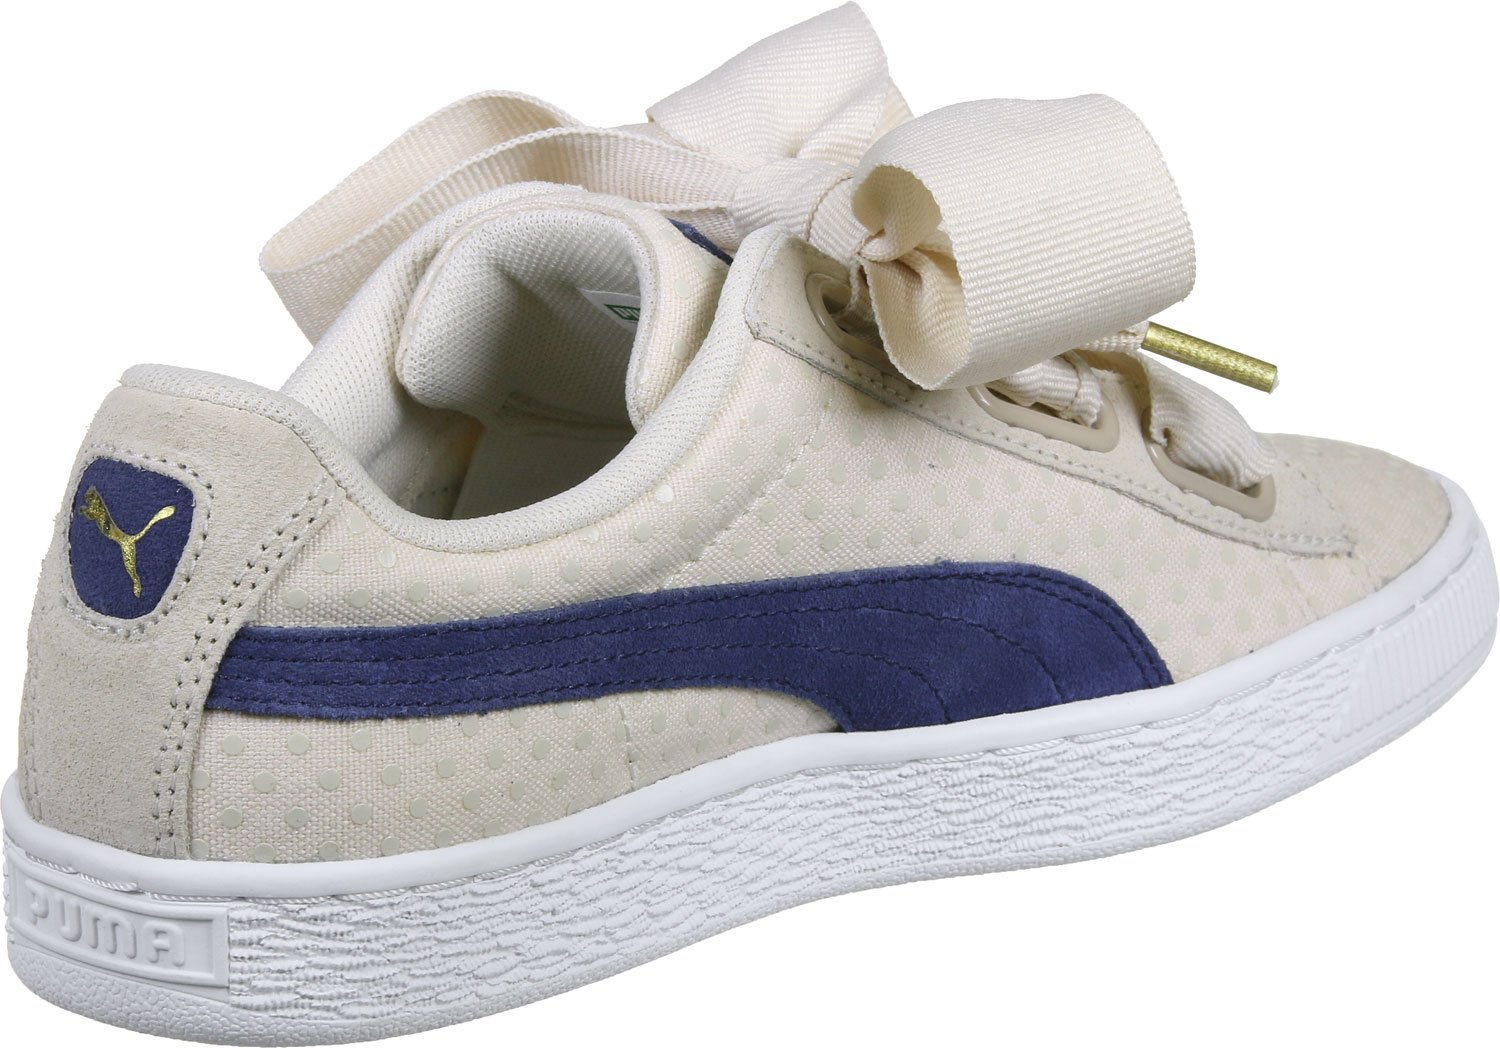 Puma Basket Heart Denim W Calzado oatmeal 40.5 EU|Oatmeal-twilight Blue